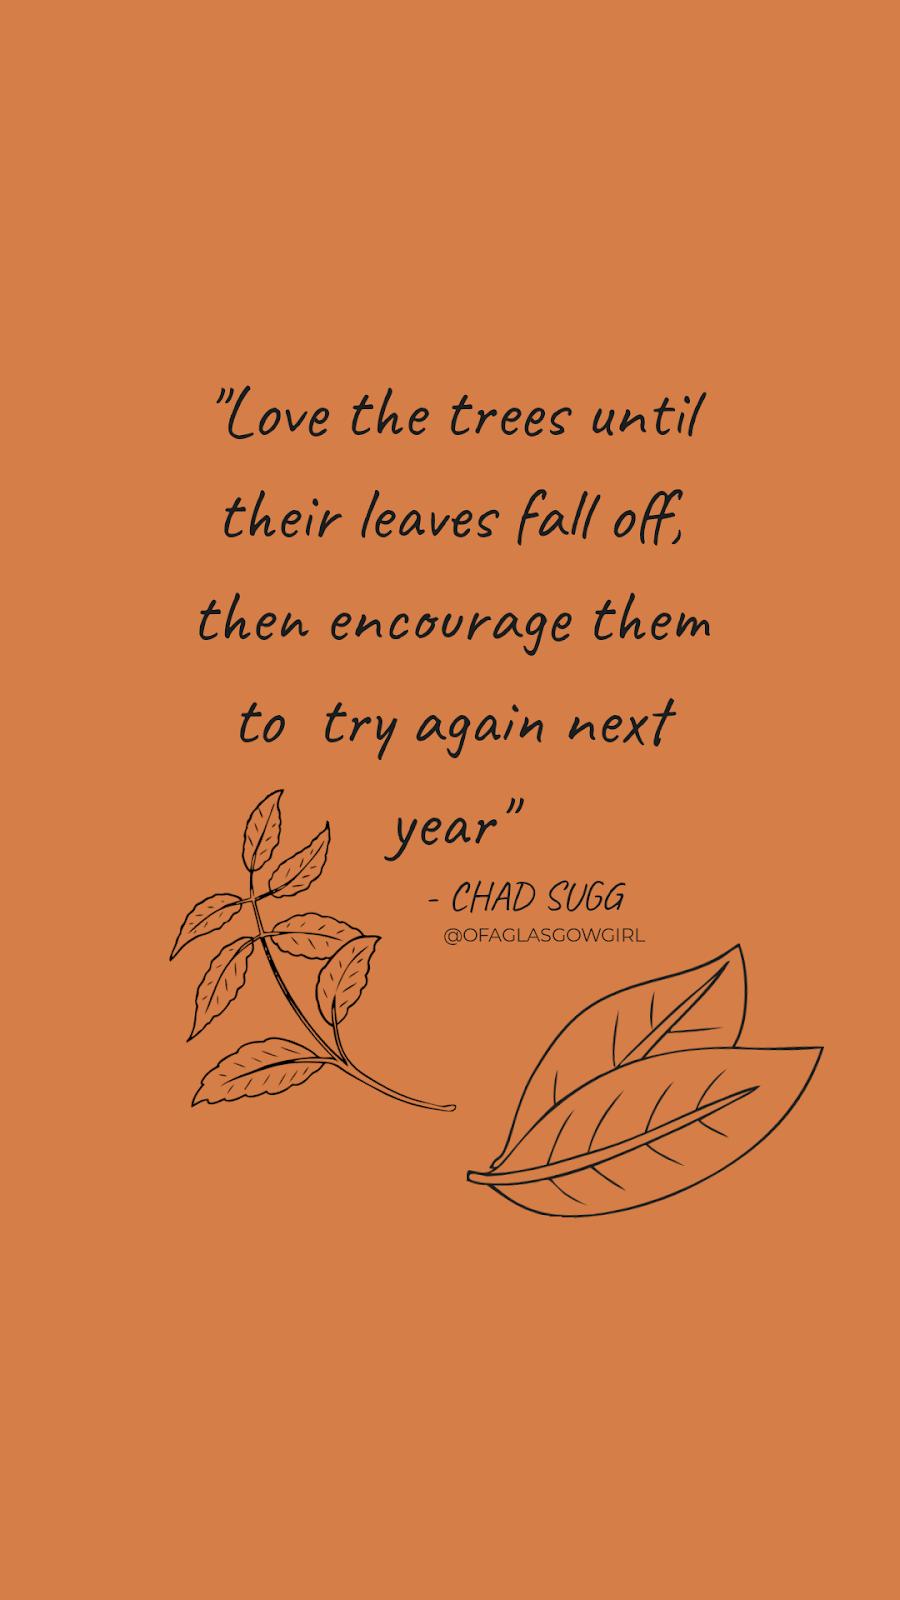 "Quote graphic that has a quote by chad sugg ""love the trees until their leaves fall off, then encourage them to try again next year"" created by @ofaglasgowgirl. on a burnt orange background with outlines of leaves underneath it."